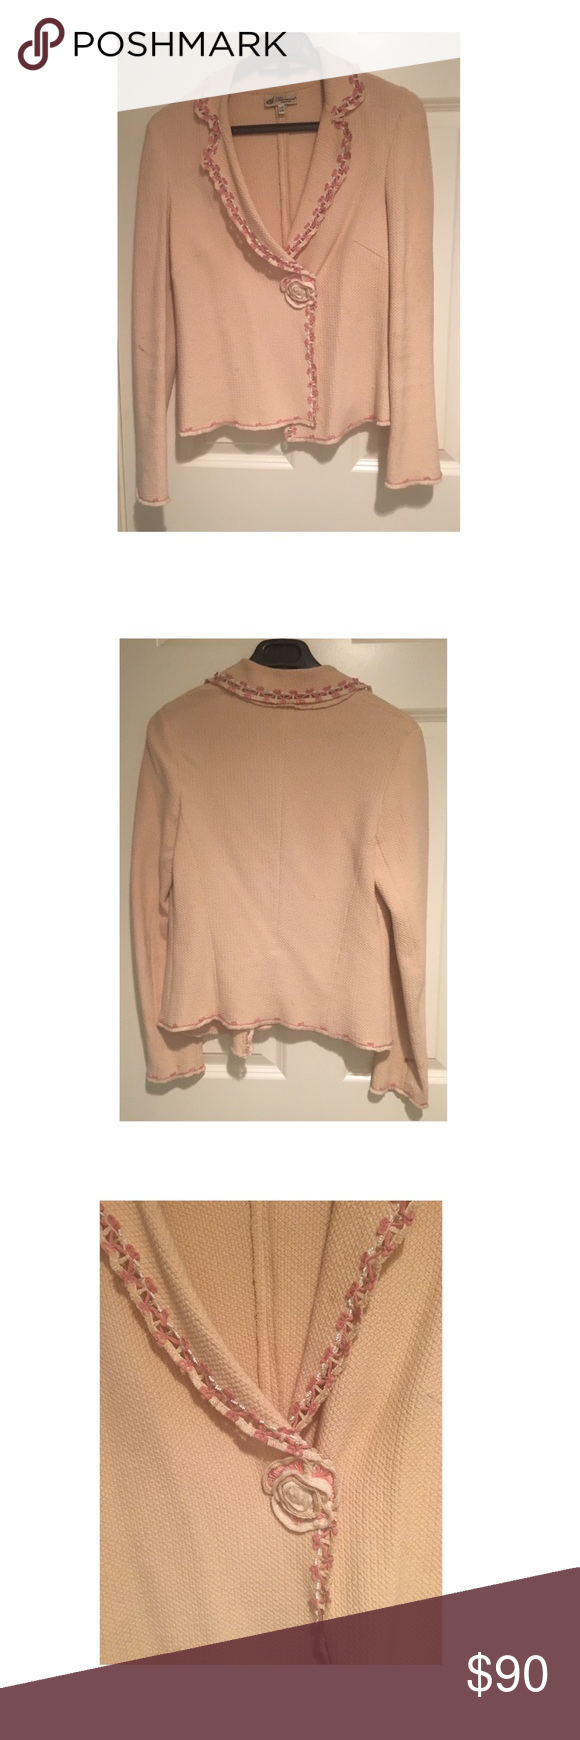 BLUMARINE JACKET A BLUMARINE pink light jacket perfect to throw on over a tee. Can be left open or closed. When worn closed the beautiful flower is shown. Detailing is key on this jacket Jackets & Coats Blazers